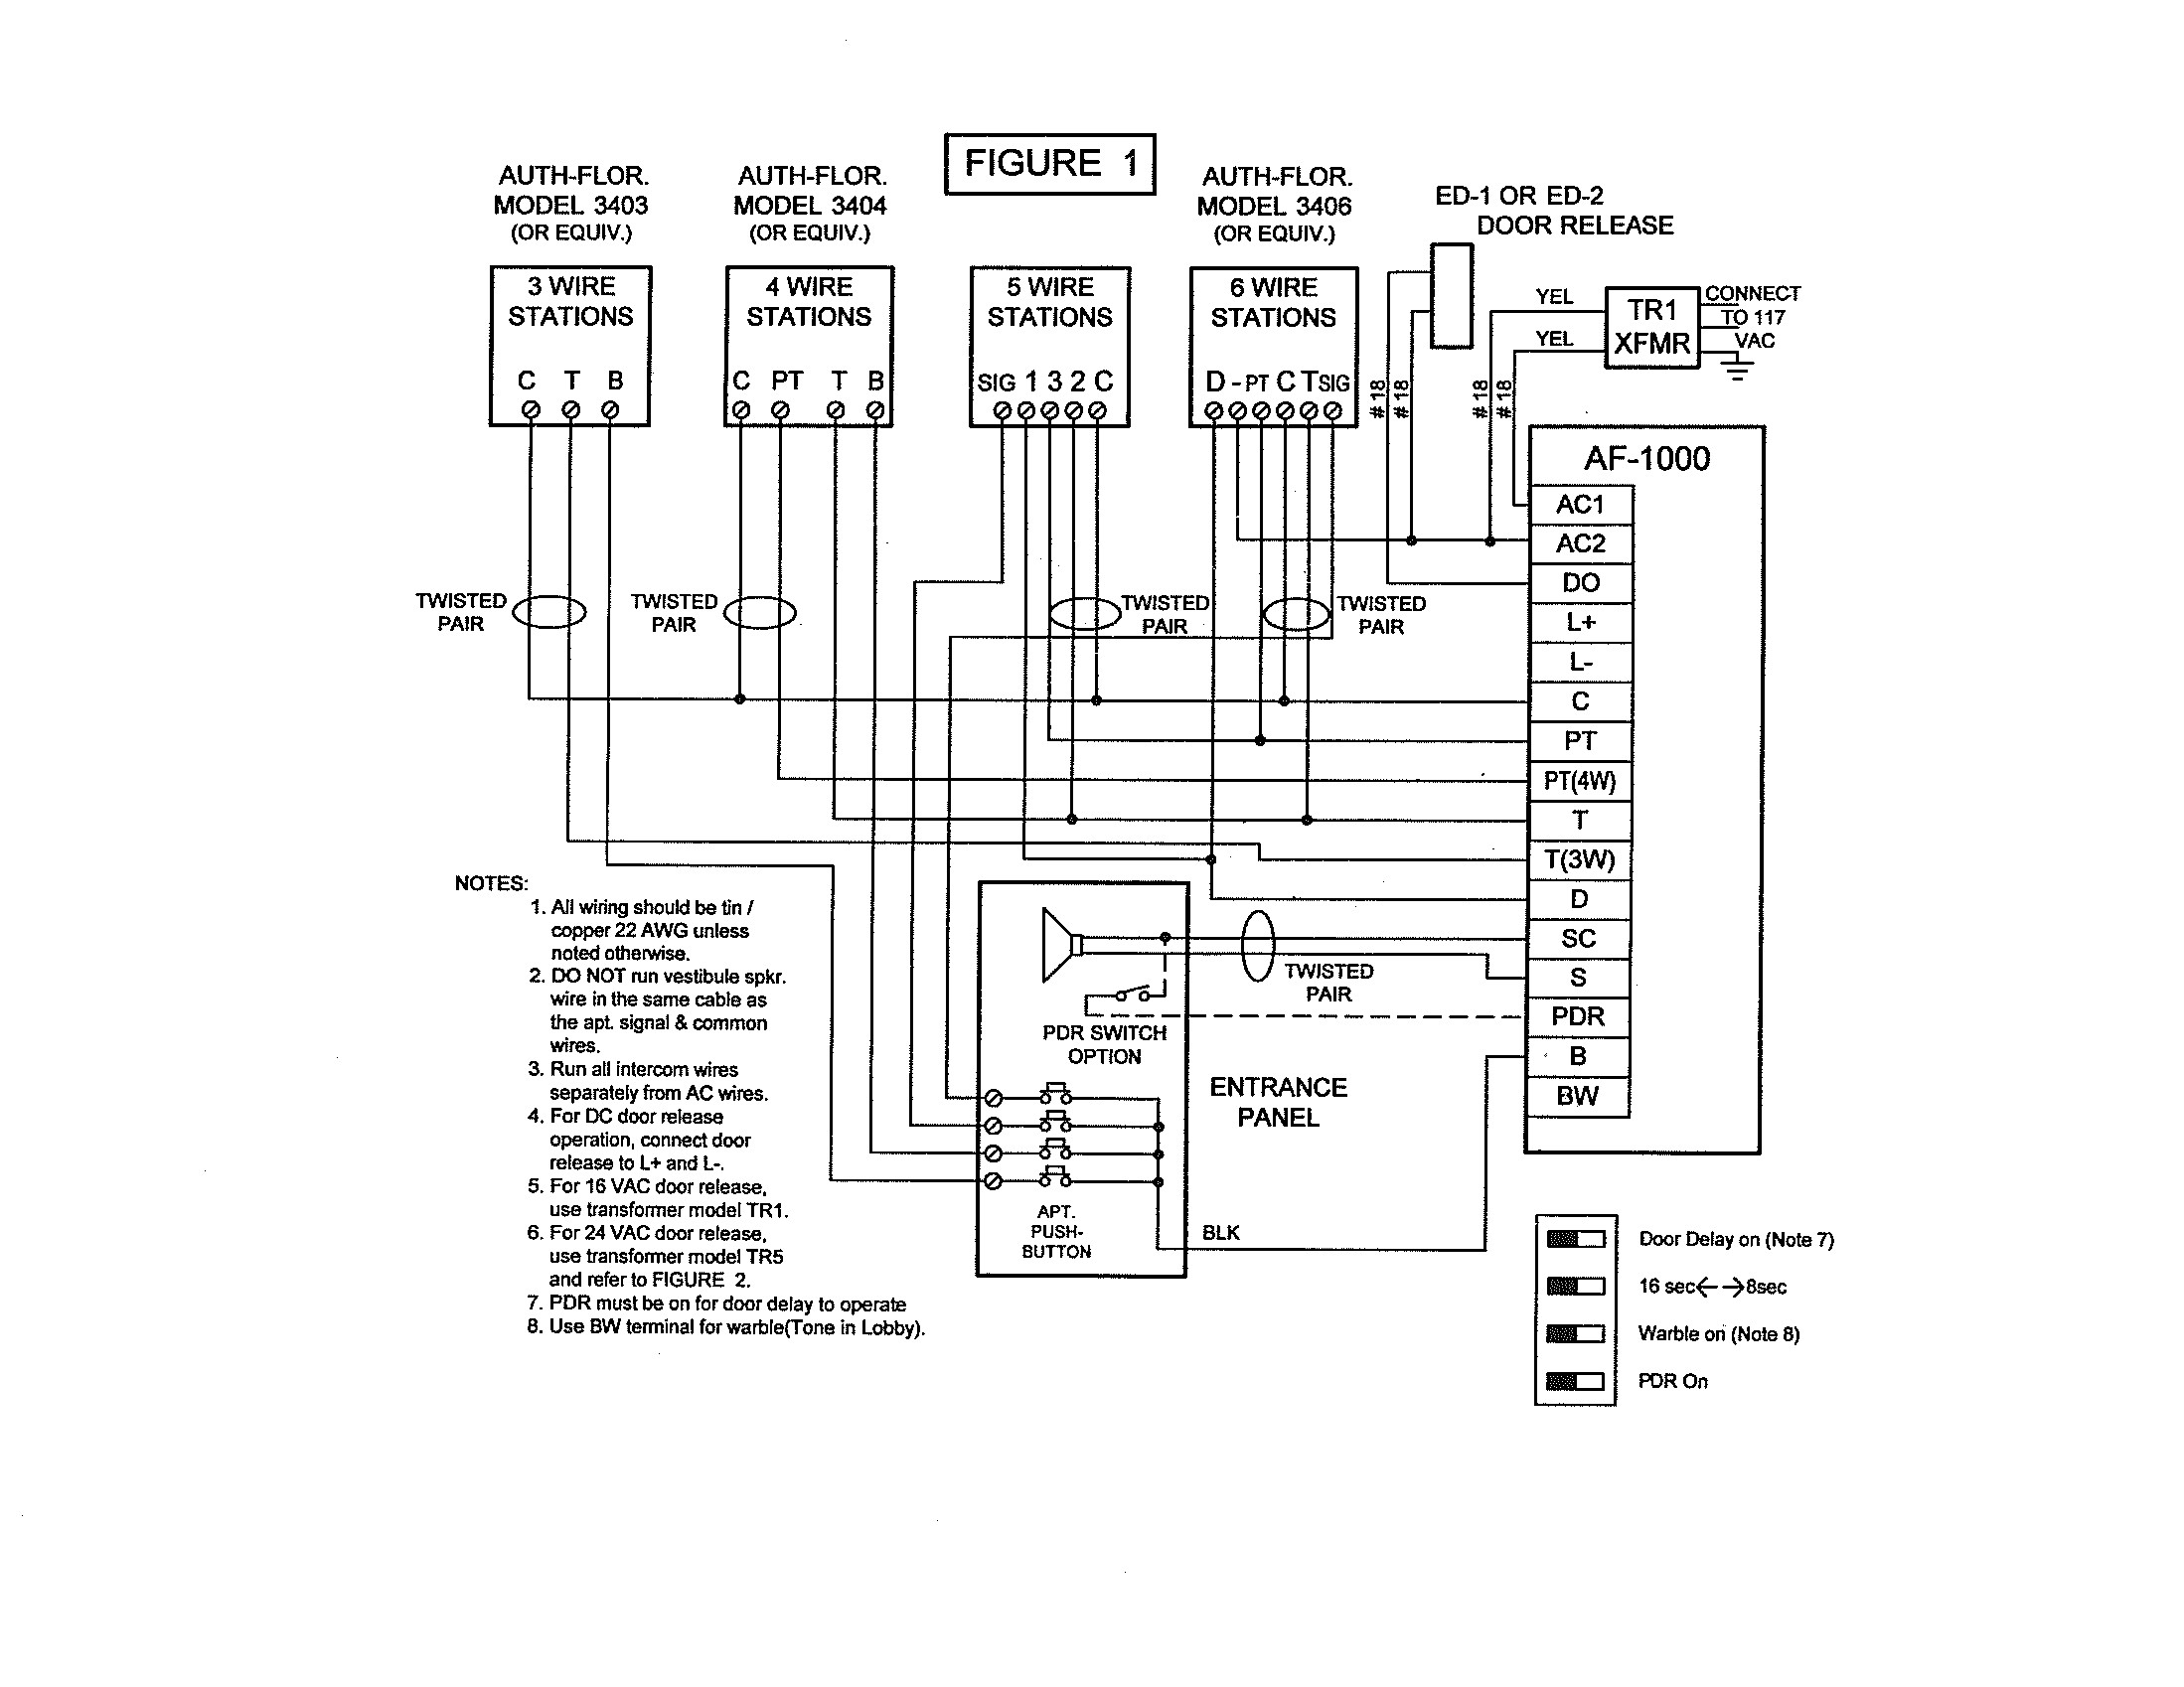 Perspex Large further Mosaic moreover Nutone Inter  Wiring Diagram Pacific Electronics Wire Plastic Inter Station Rh Leedan Inter Connection Diagram Inter Systems Wiring Diagram M furthermore B E C Cd Faec C Ac B B in addition Ip Based Access Control System Diagram. on inter systems wiring diagram